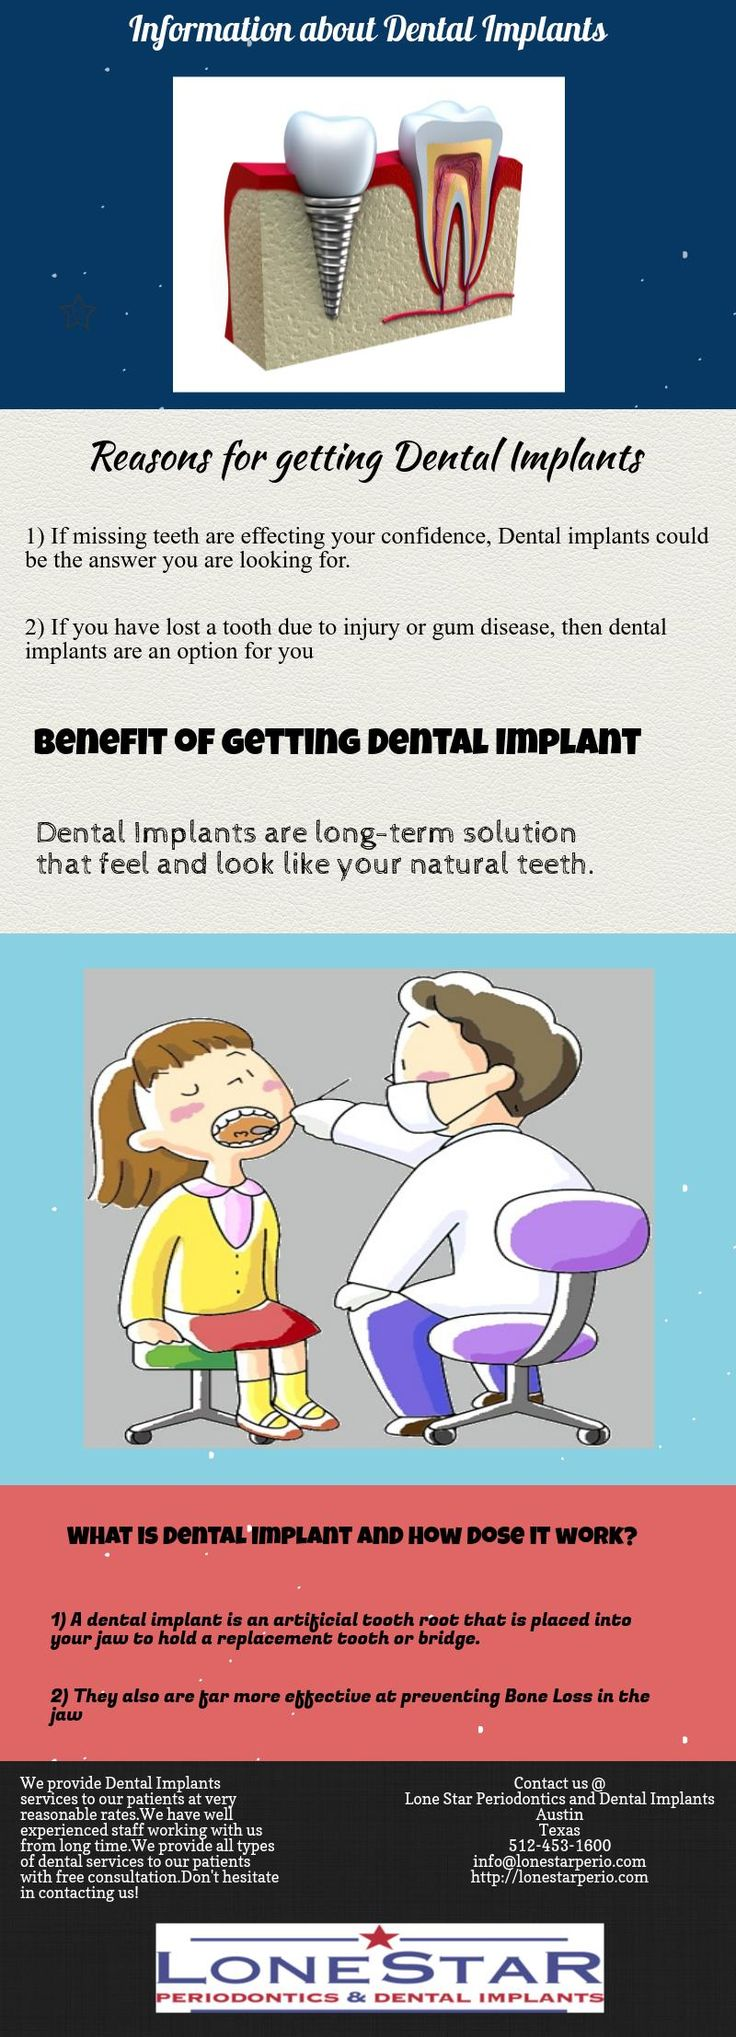 So, Are you thinking about getting Dental implants? Don't worry, check out the complete information regarding dental implants here.